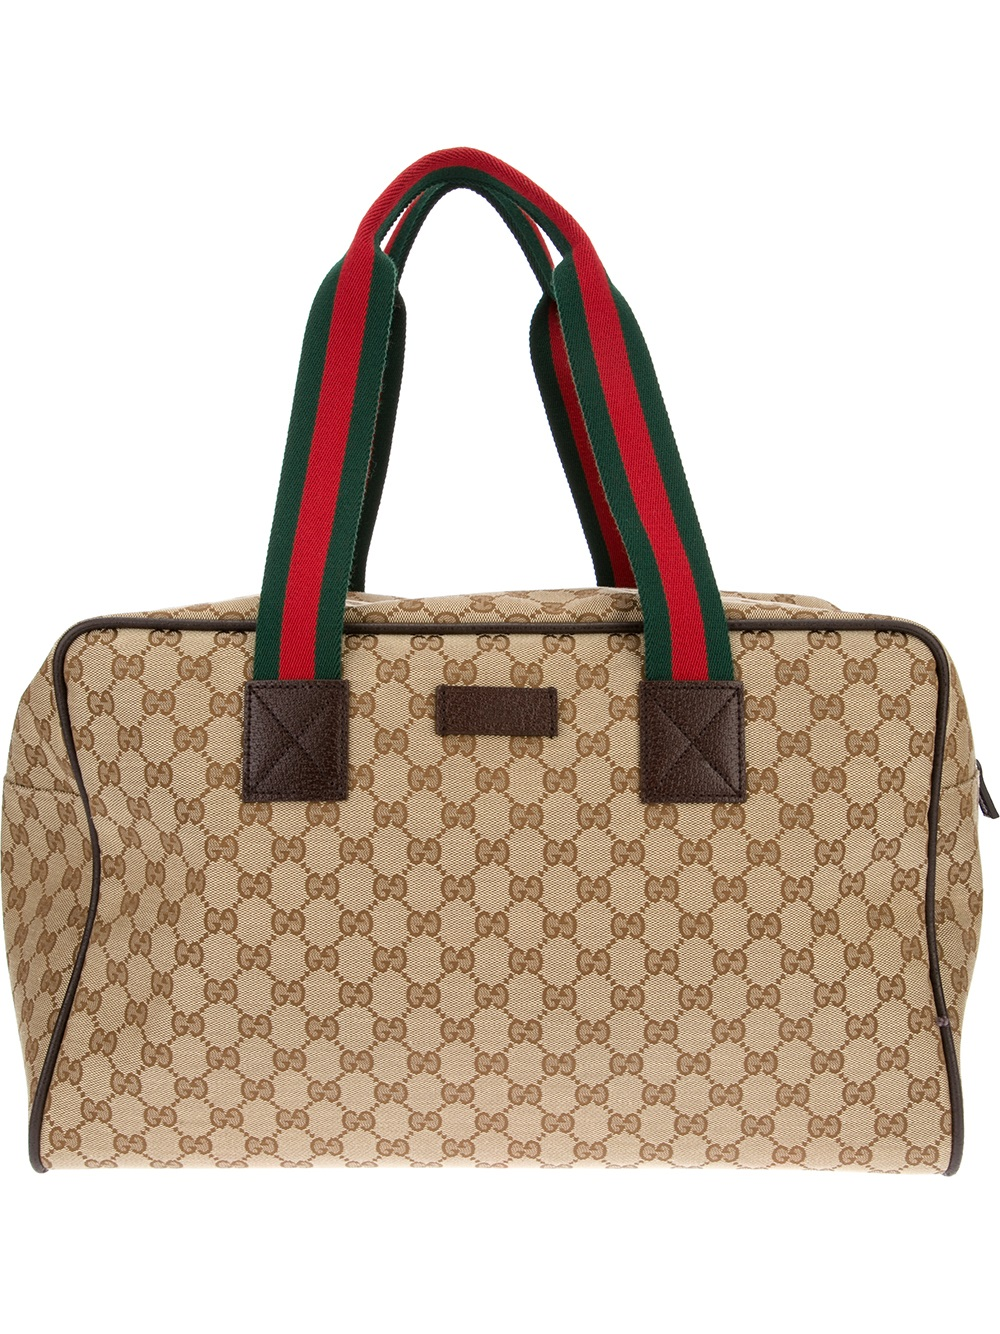 0bd76d20fcd4 All Gucci Bags Pictures | Stanford Center for Opportunity Policy in ...